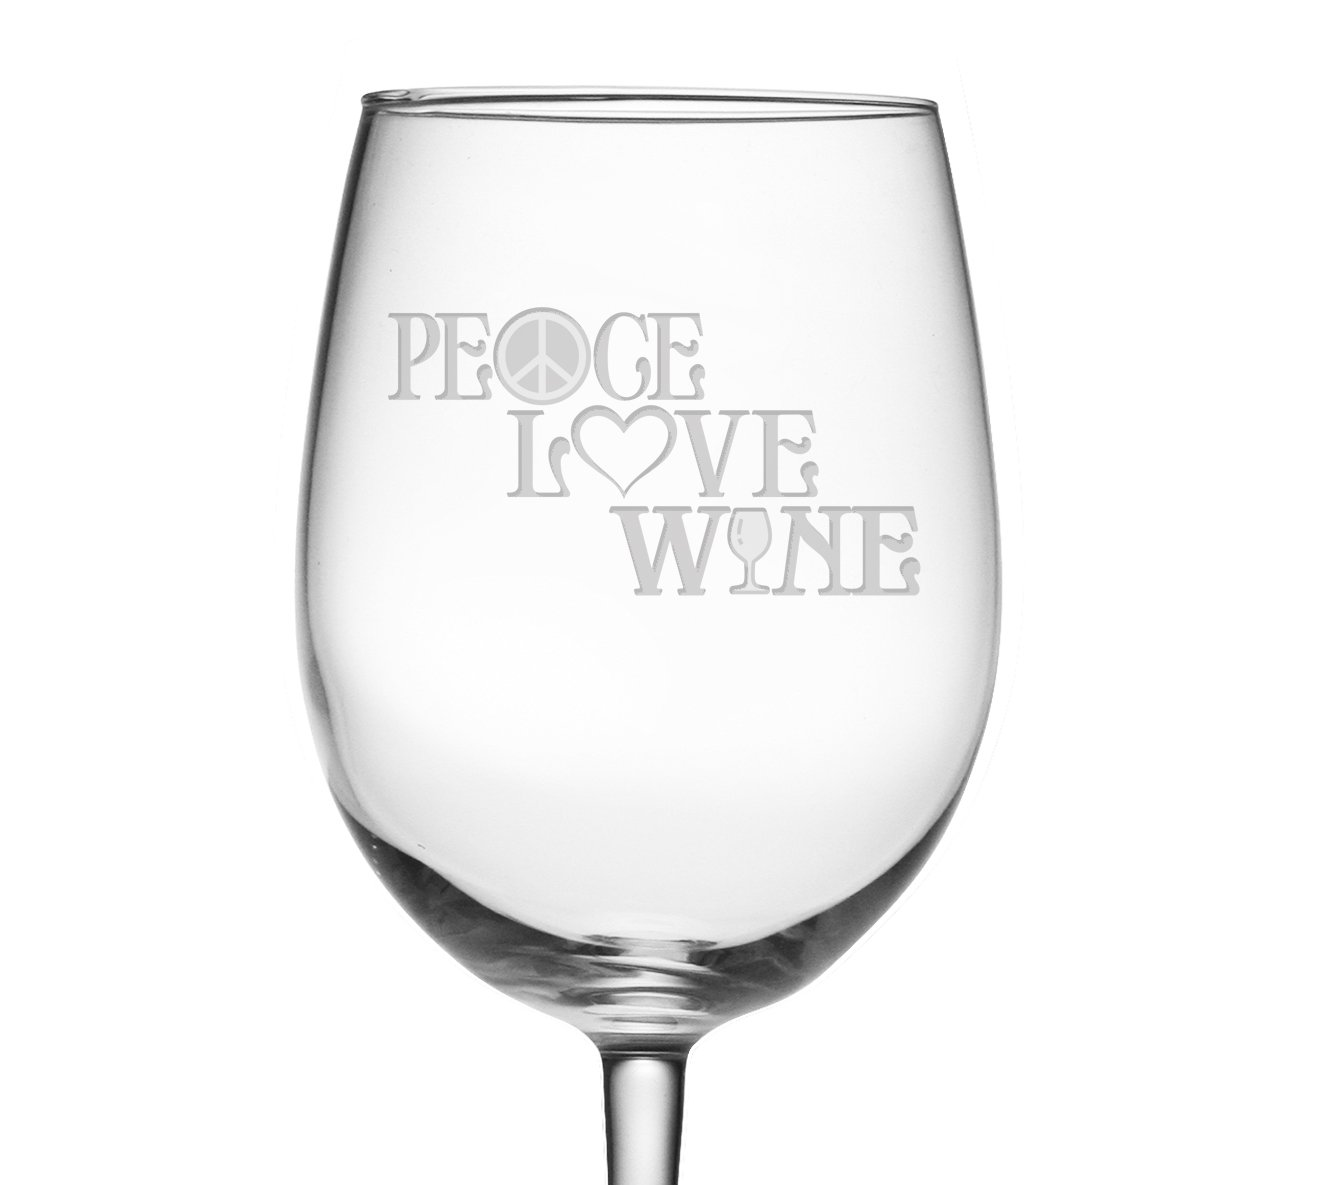 Peace, Love & Wine Etched Wine Glass – Great Wine Gift, Birthday Gift for Her – Peace Symbol, Heart, Wine Glass Design – Perfect Anniversary or Housewarming Gift – Wedding, Bridesmaid and Bridal Shower Gift